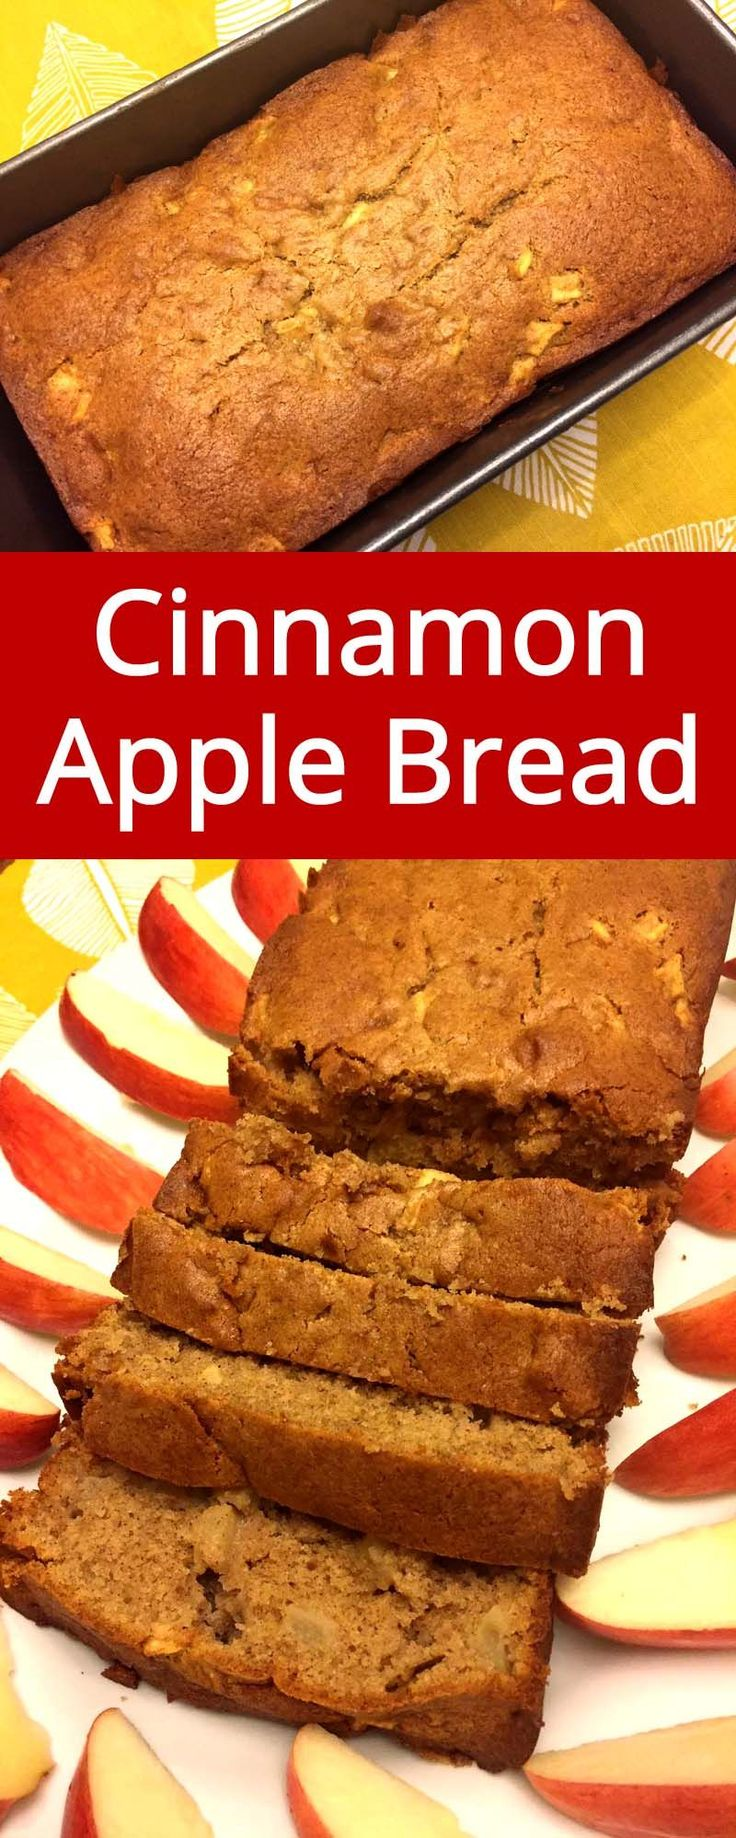 Cinnamon Apple Bread is my fave! So easy and delicious, and smells so good! YUM! | MelanieCooks.com